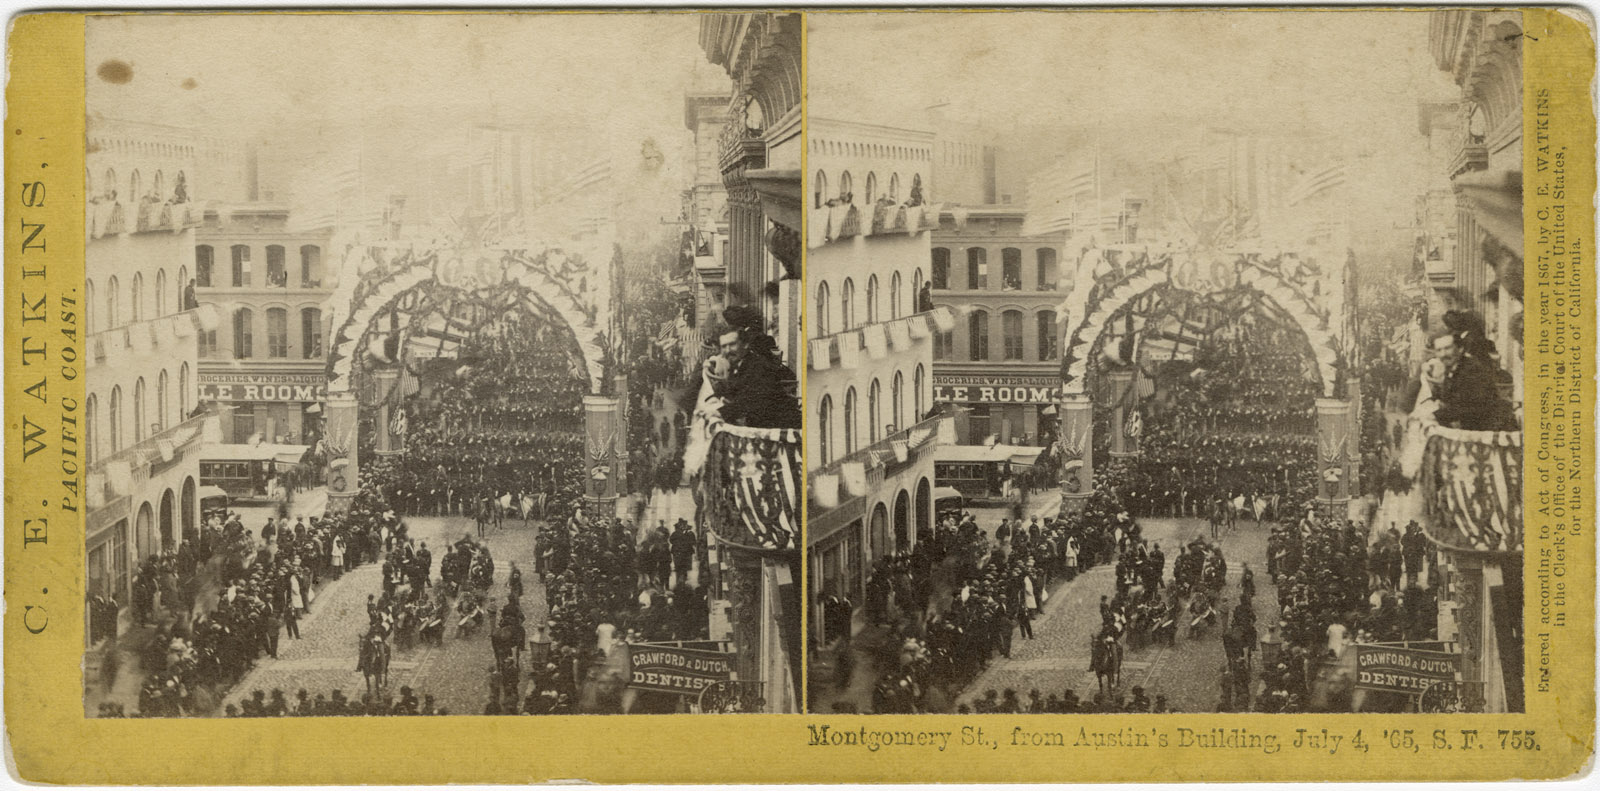 Watkins #755 - Montgomery Street, from Austin's Building, July 4, 1865, S.F.